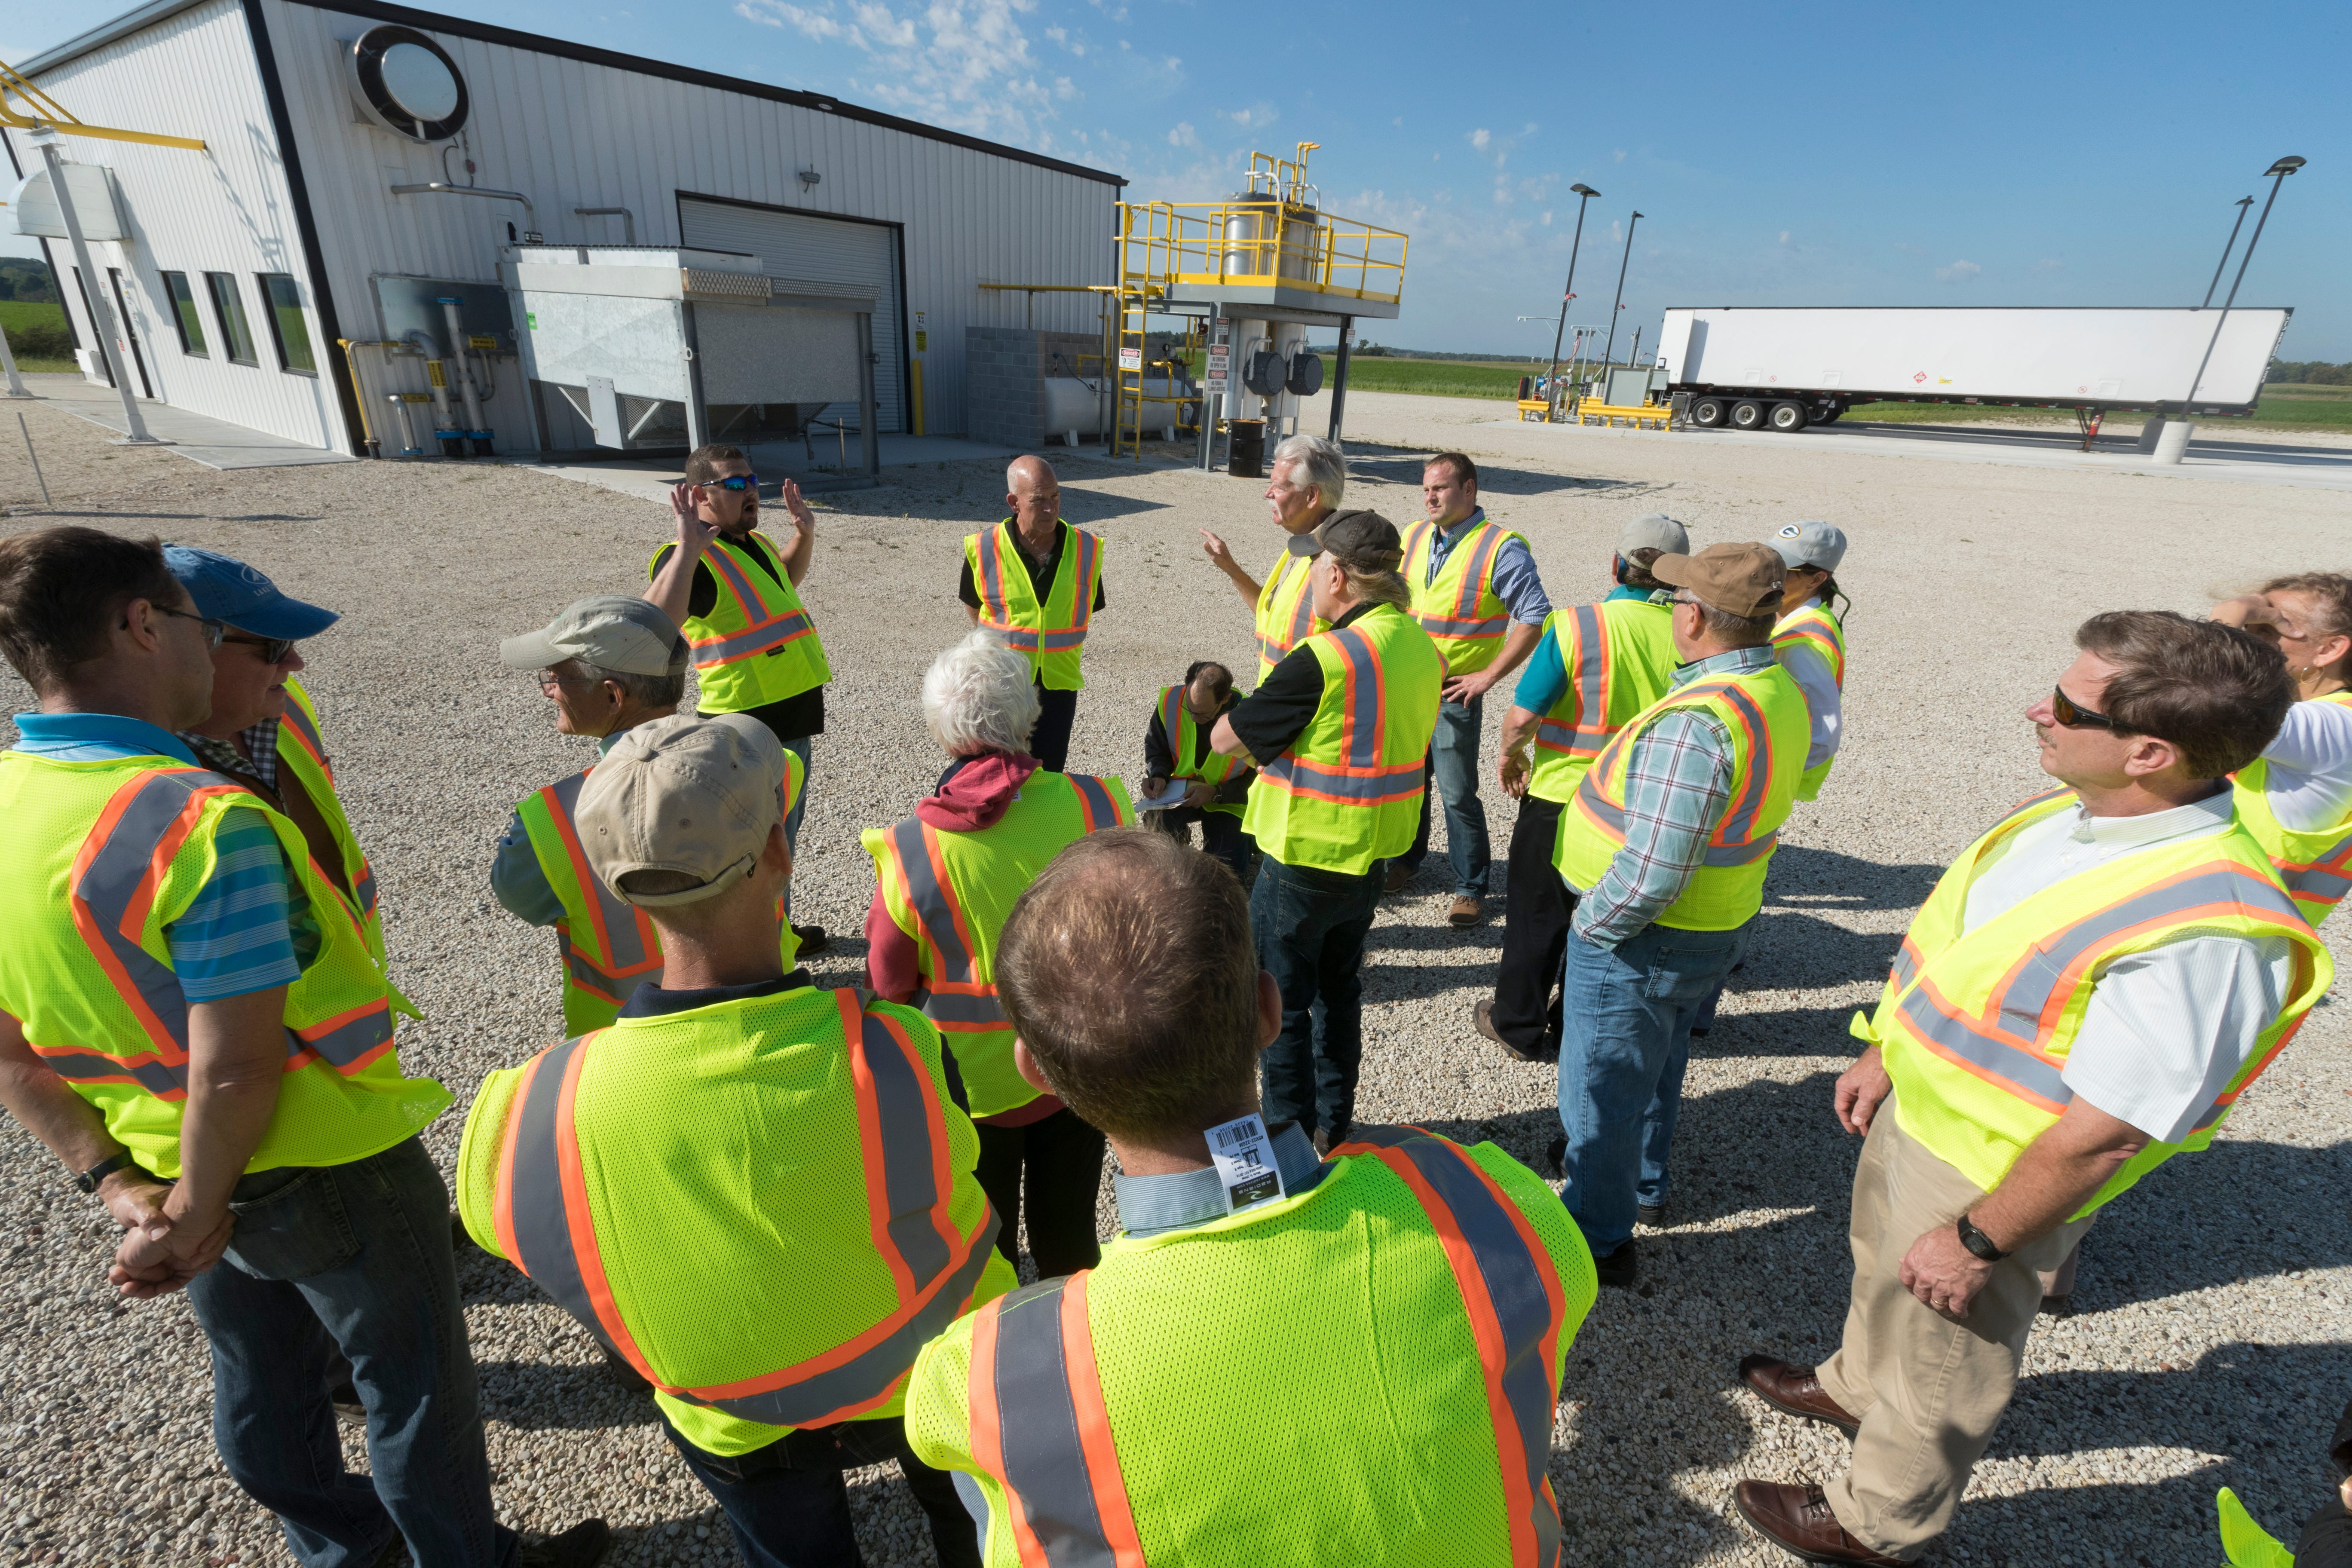 J.J. Pagel, (hands in the air) of Pagel's Ponderosa, a dairy farm, shows members of the Wisconsin Natural Resources Board a system that converts manure into methane gas.